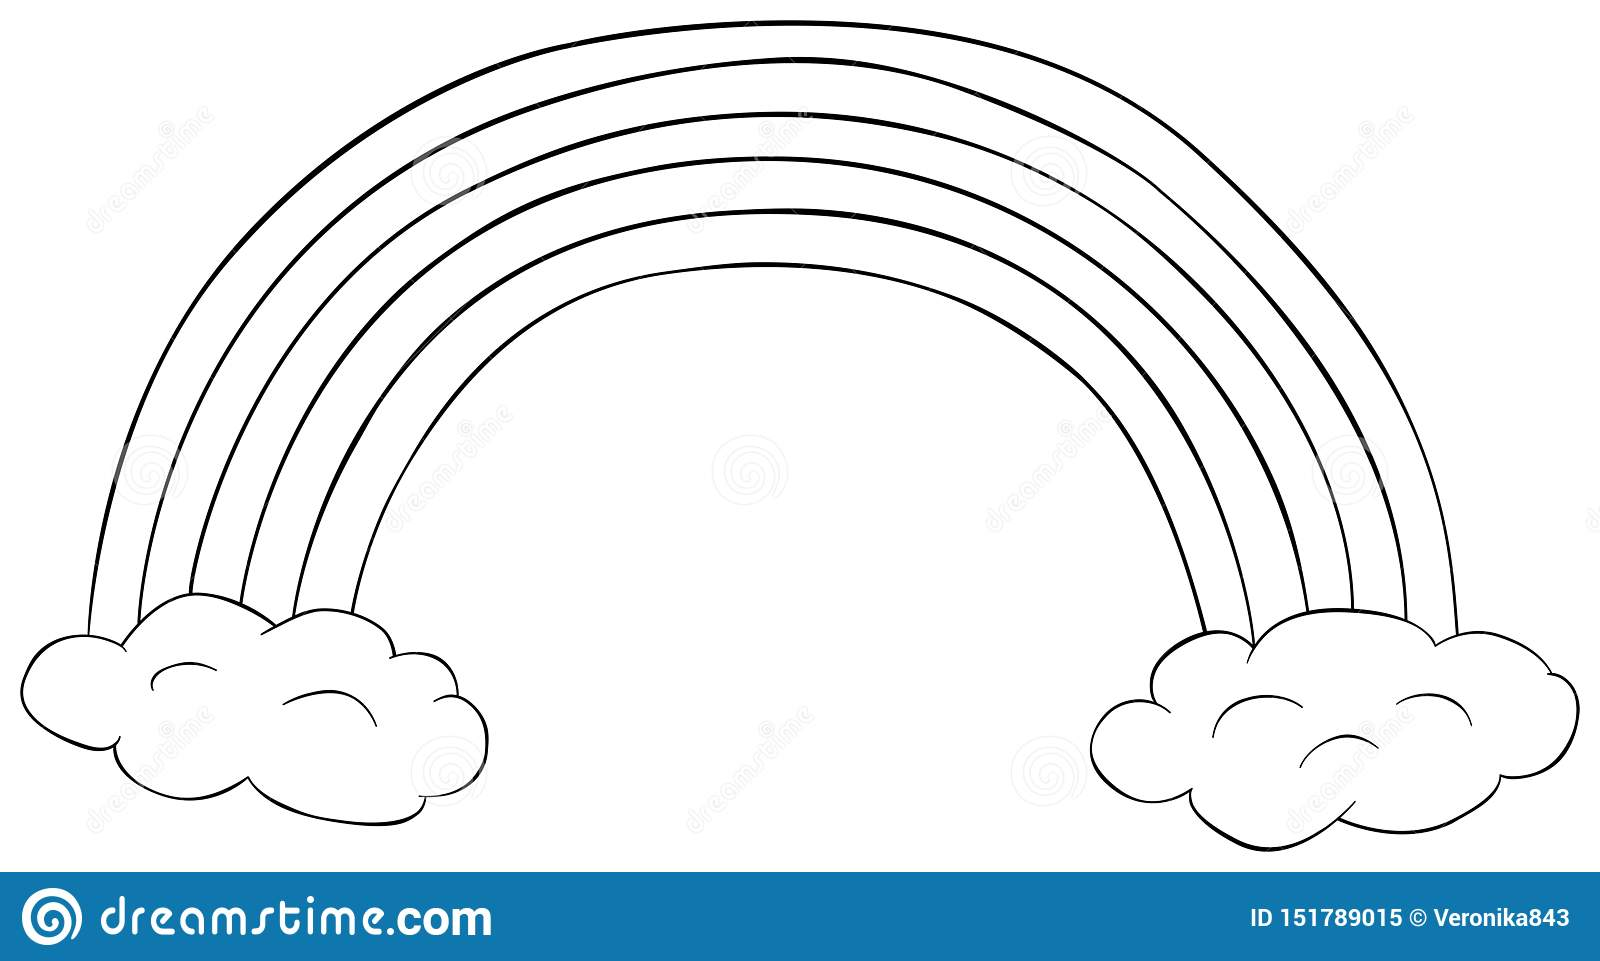 - Rainbow With Clouds Clipart. Coloring Book For Children. Doodle